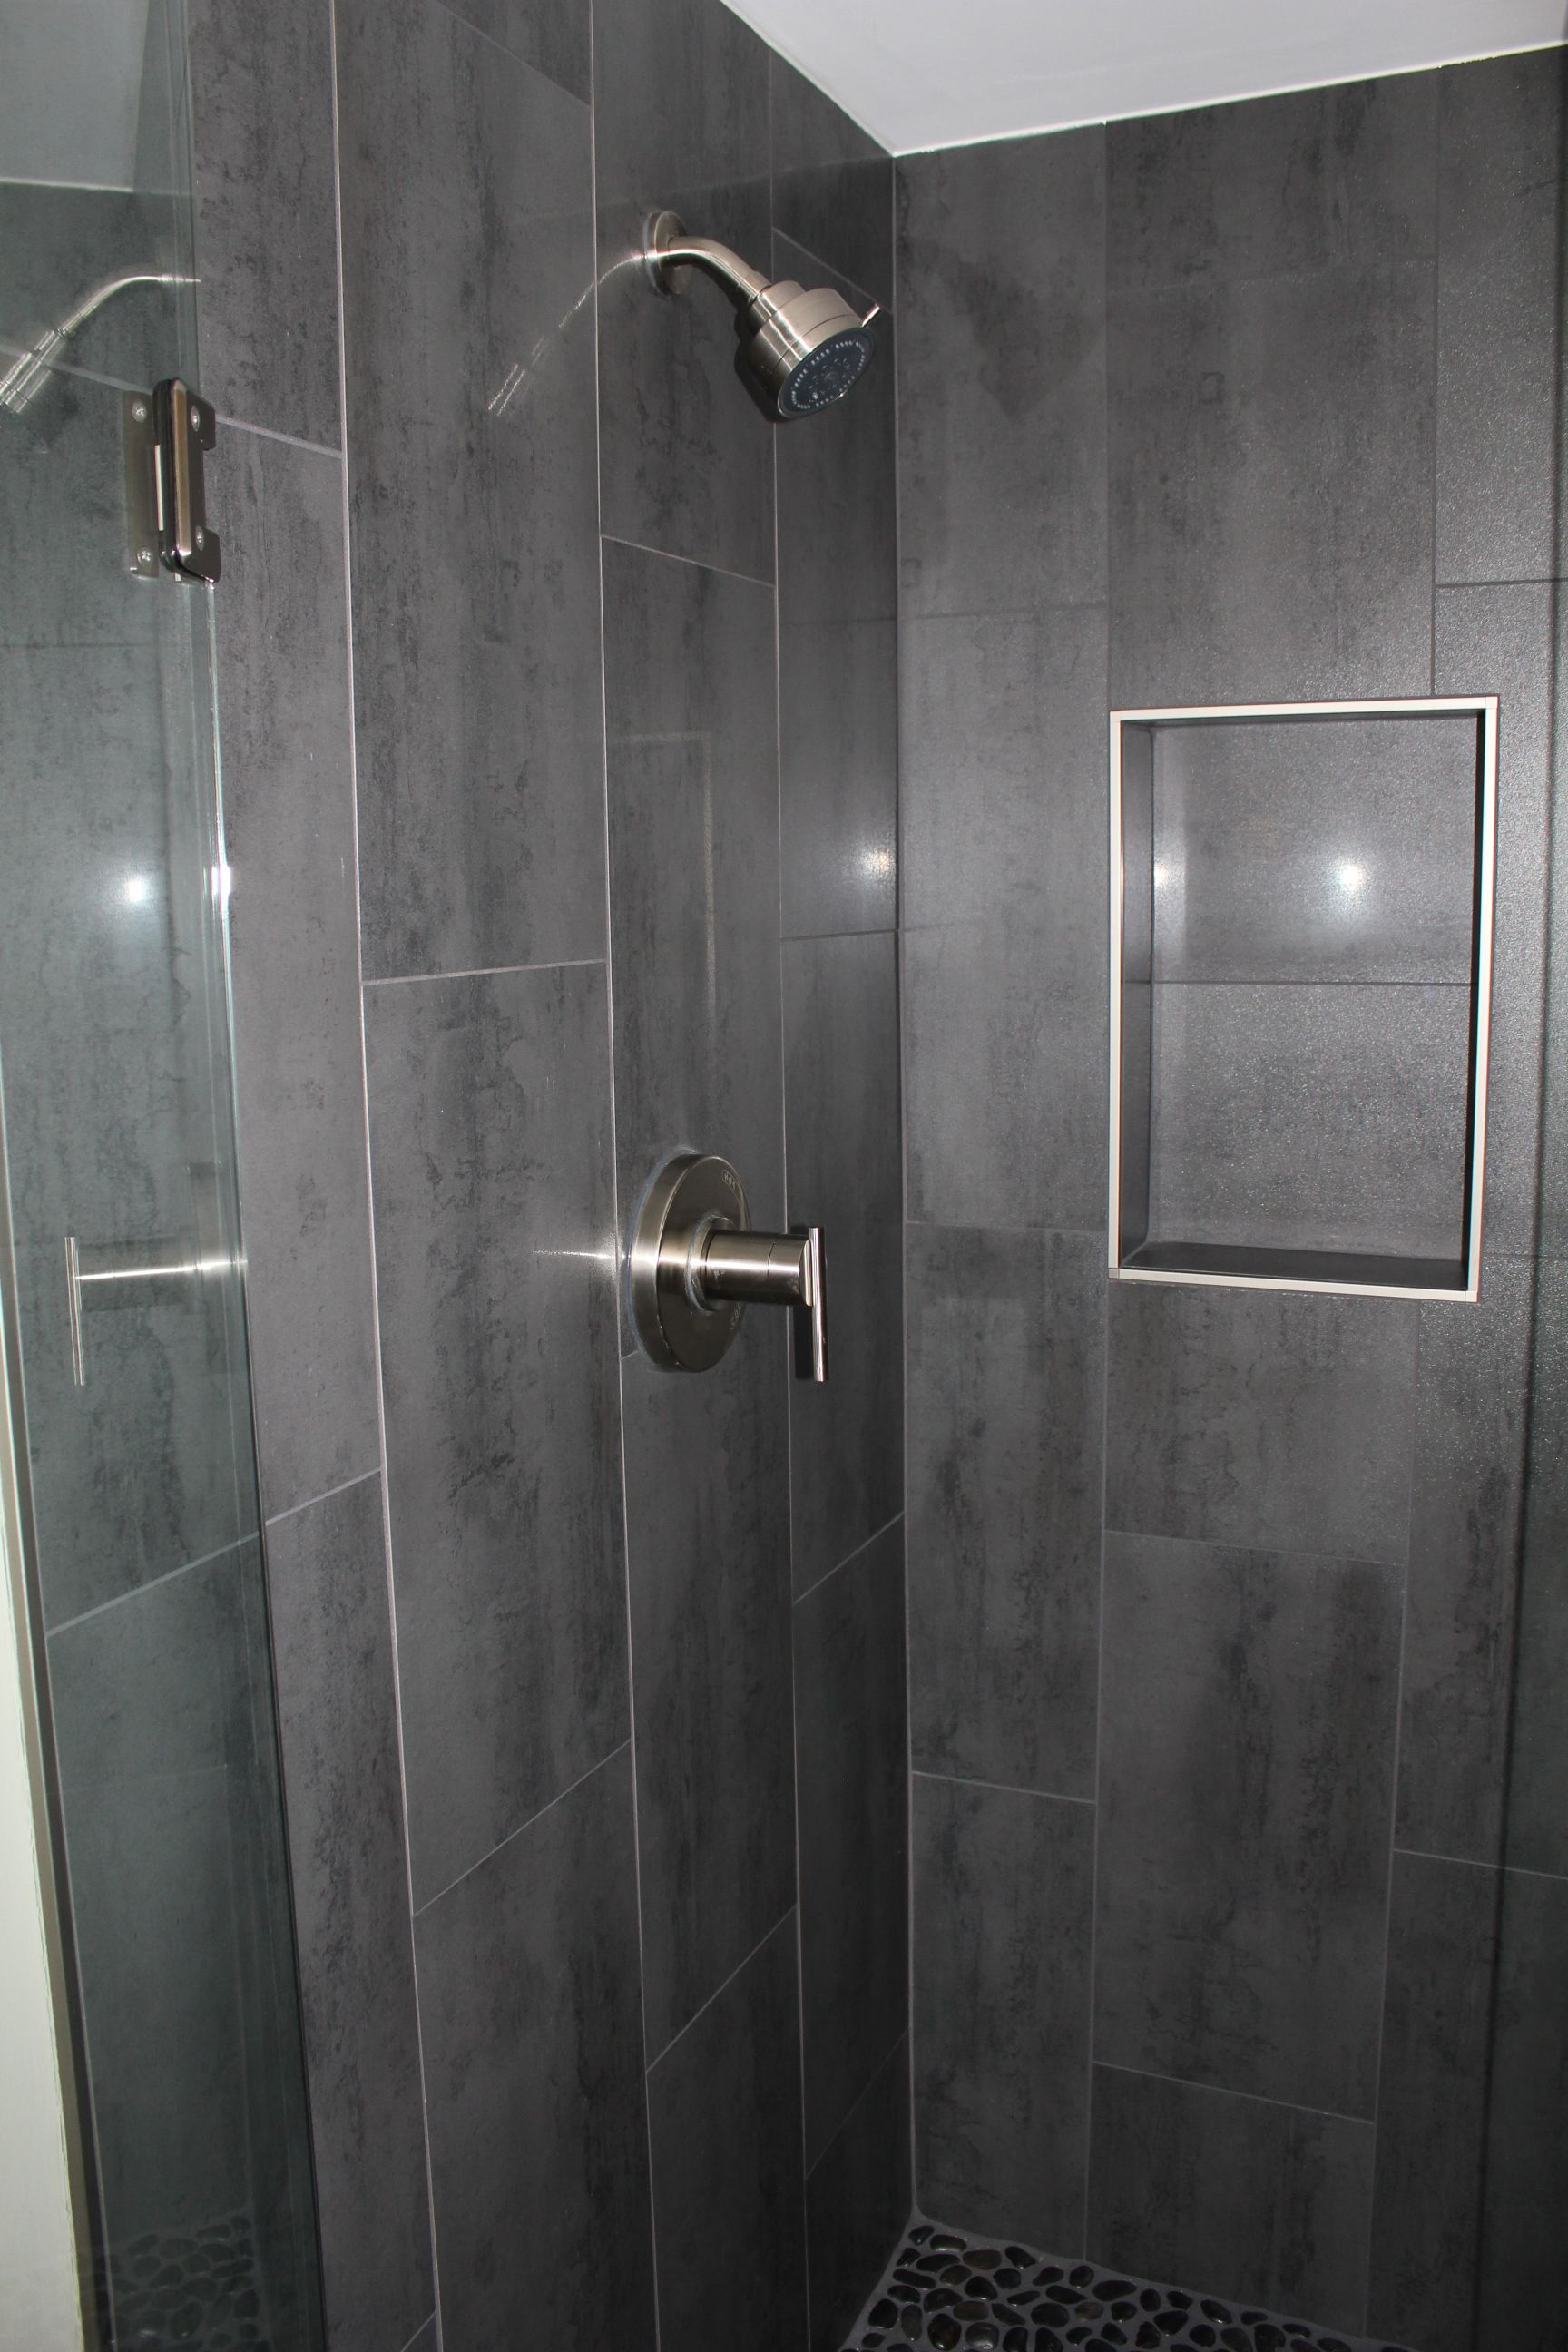 Attractive Brown Mosaic Wall Ceramic Bath Tile With Clear Glass - 3 knob shower faucettile designs for walk in showers